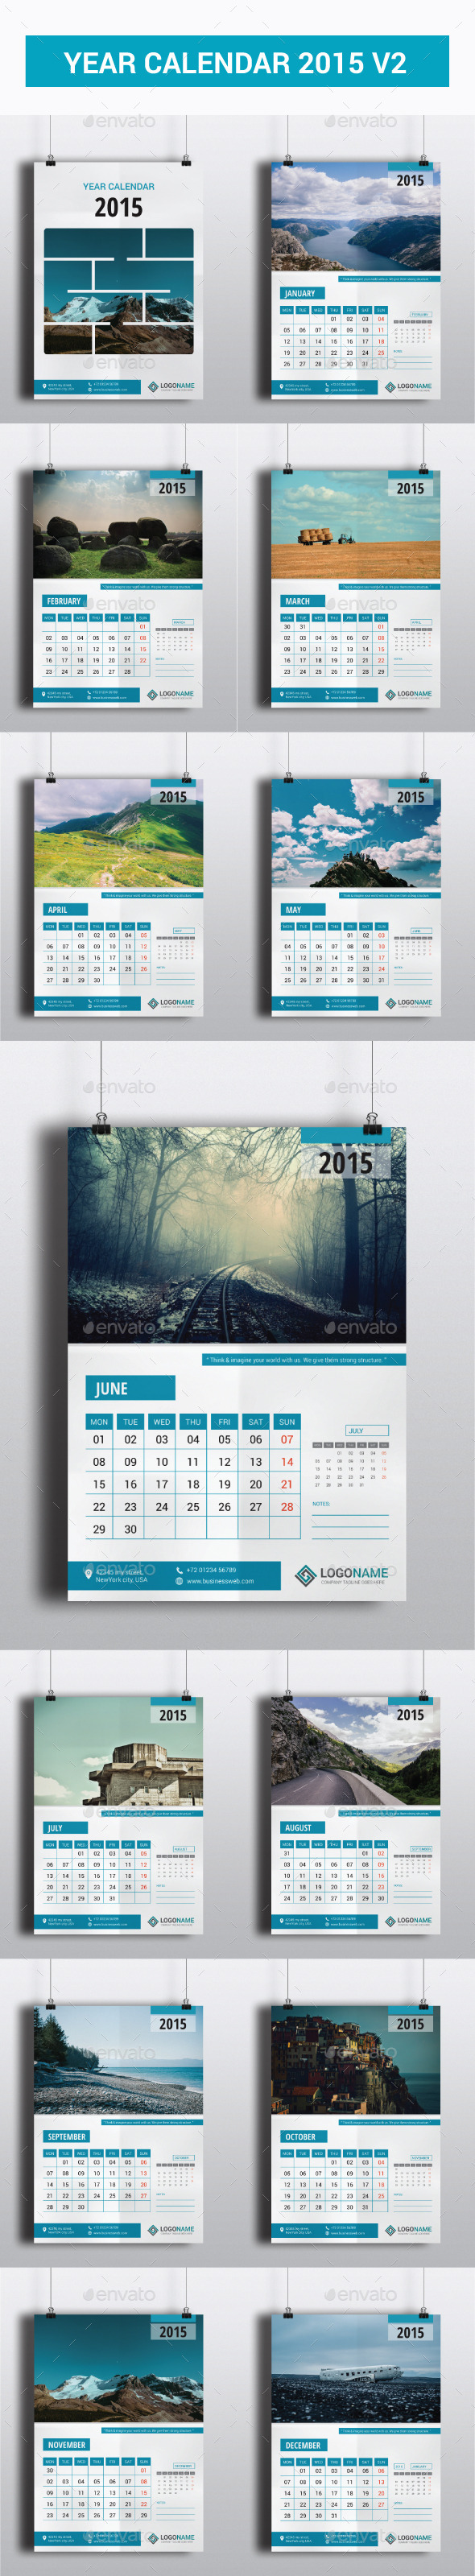 GraphicRiver Year Calendar 2015 V2 9467270